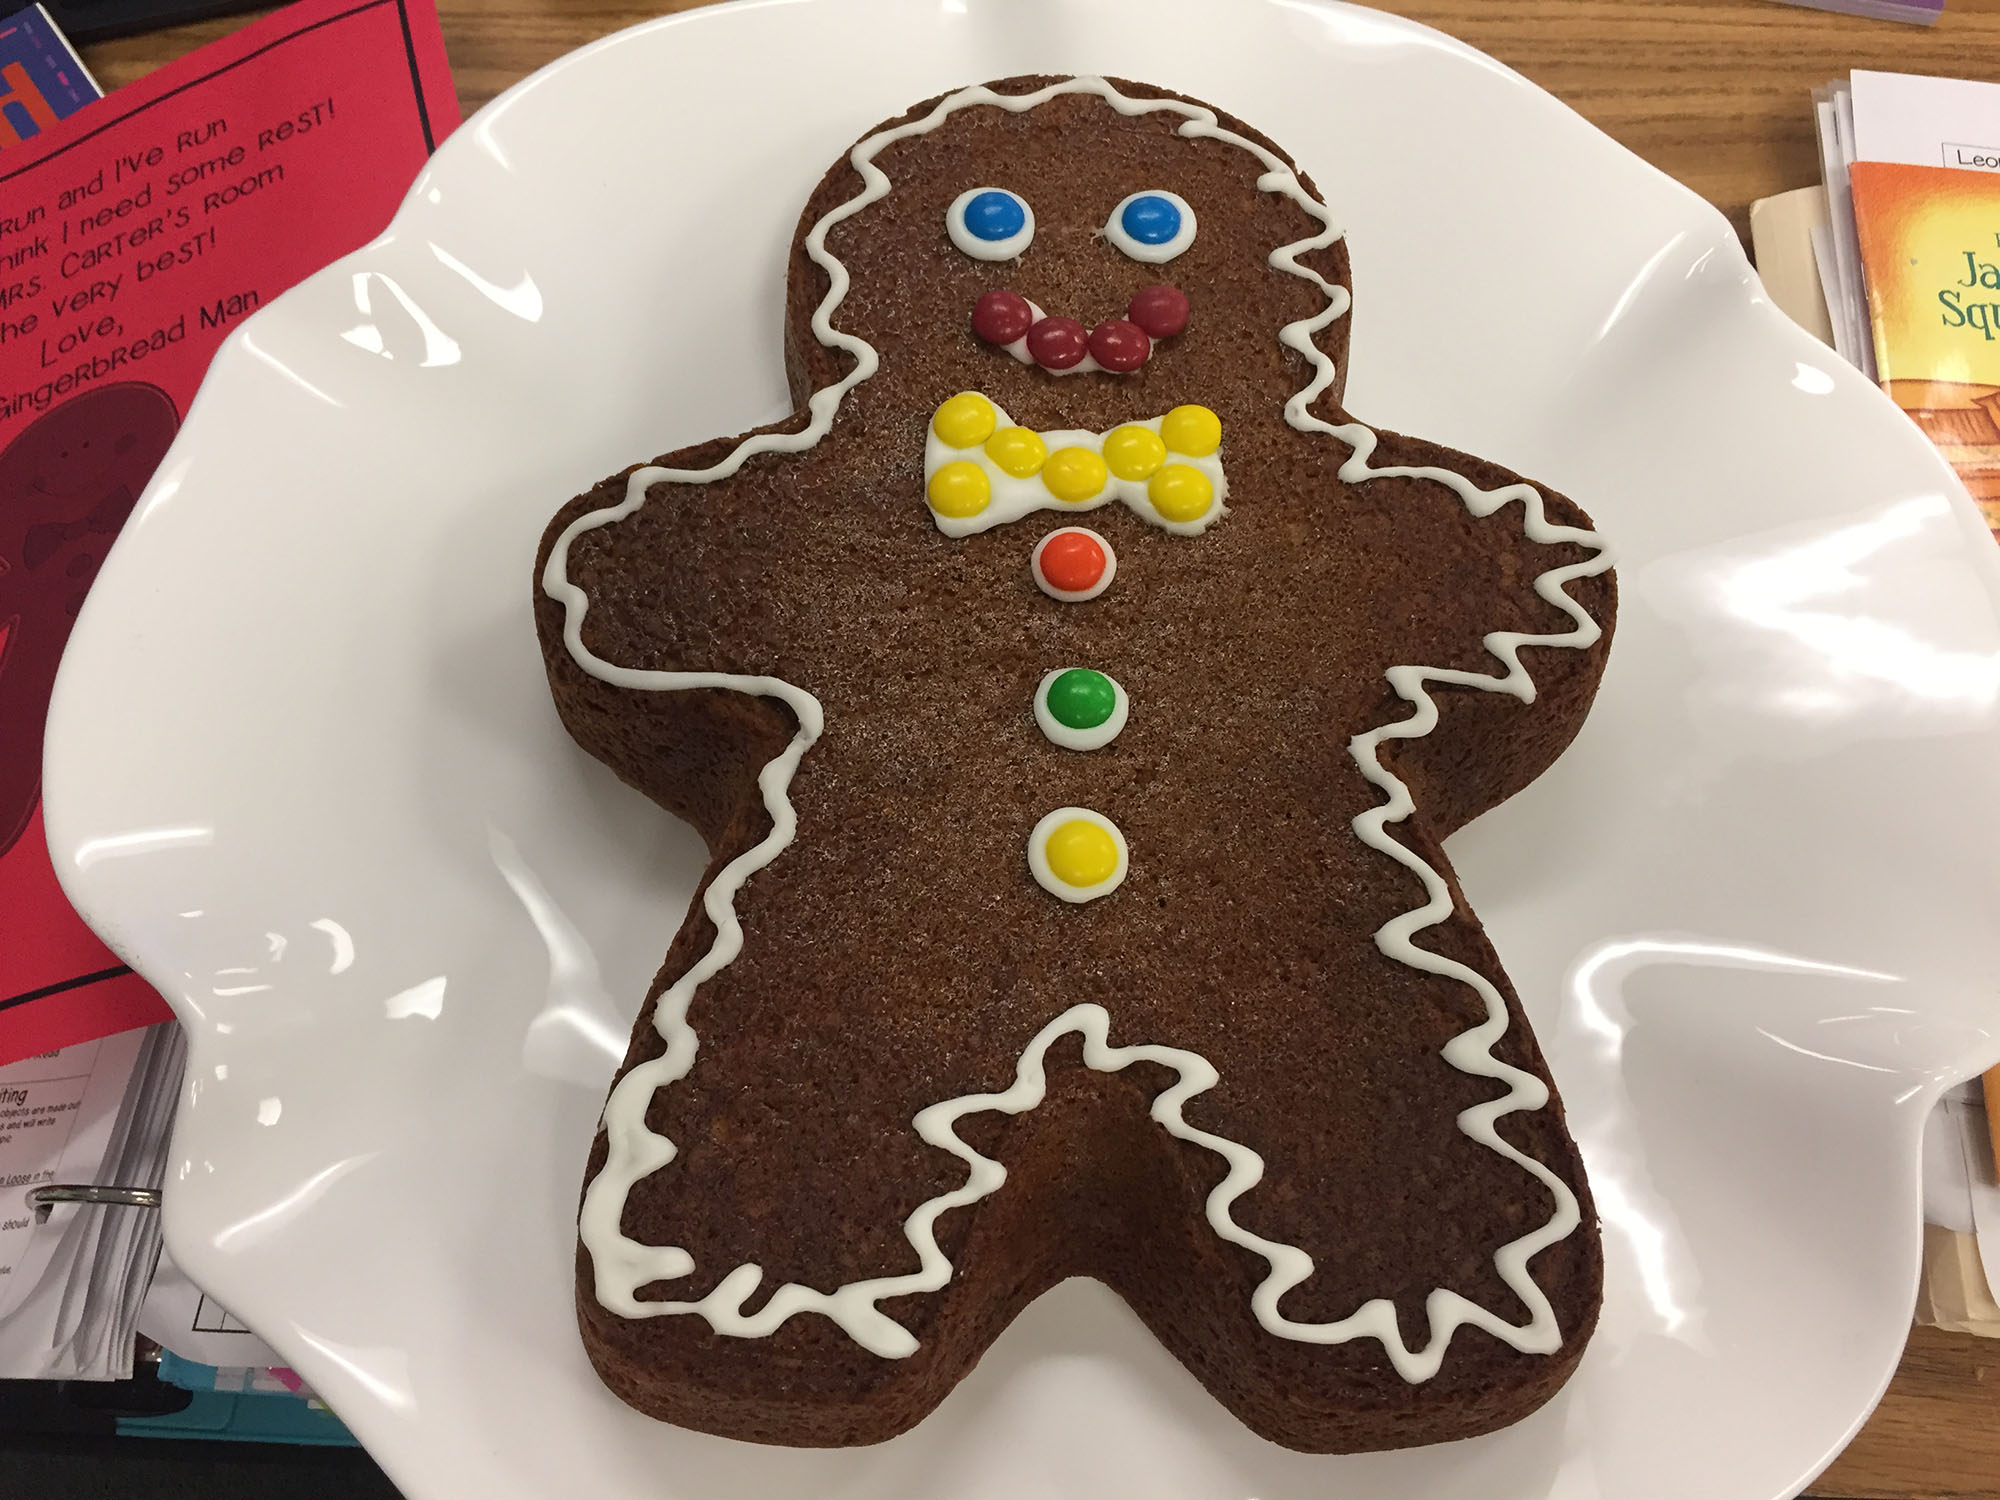 Blues clues gingerbread boy Red Shirt If You Would Like To Do Gingerbread Hunt With Your Kids Here Is Complete Set Of The Clues The Gingerbread Man Leaves Behind Have Fun Amazoncom Days Of Gingerbread Fun Scholastic